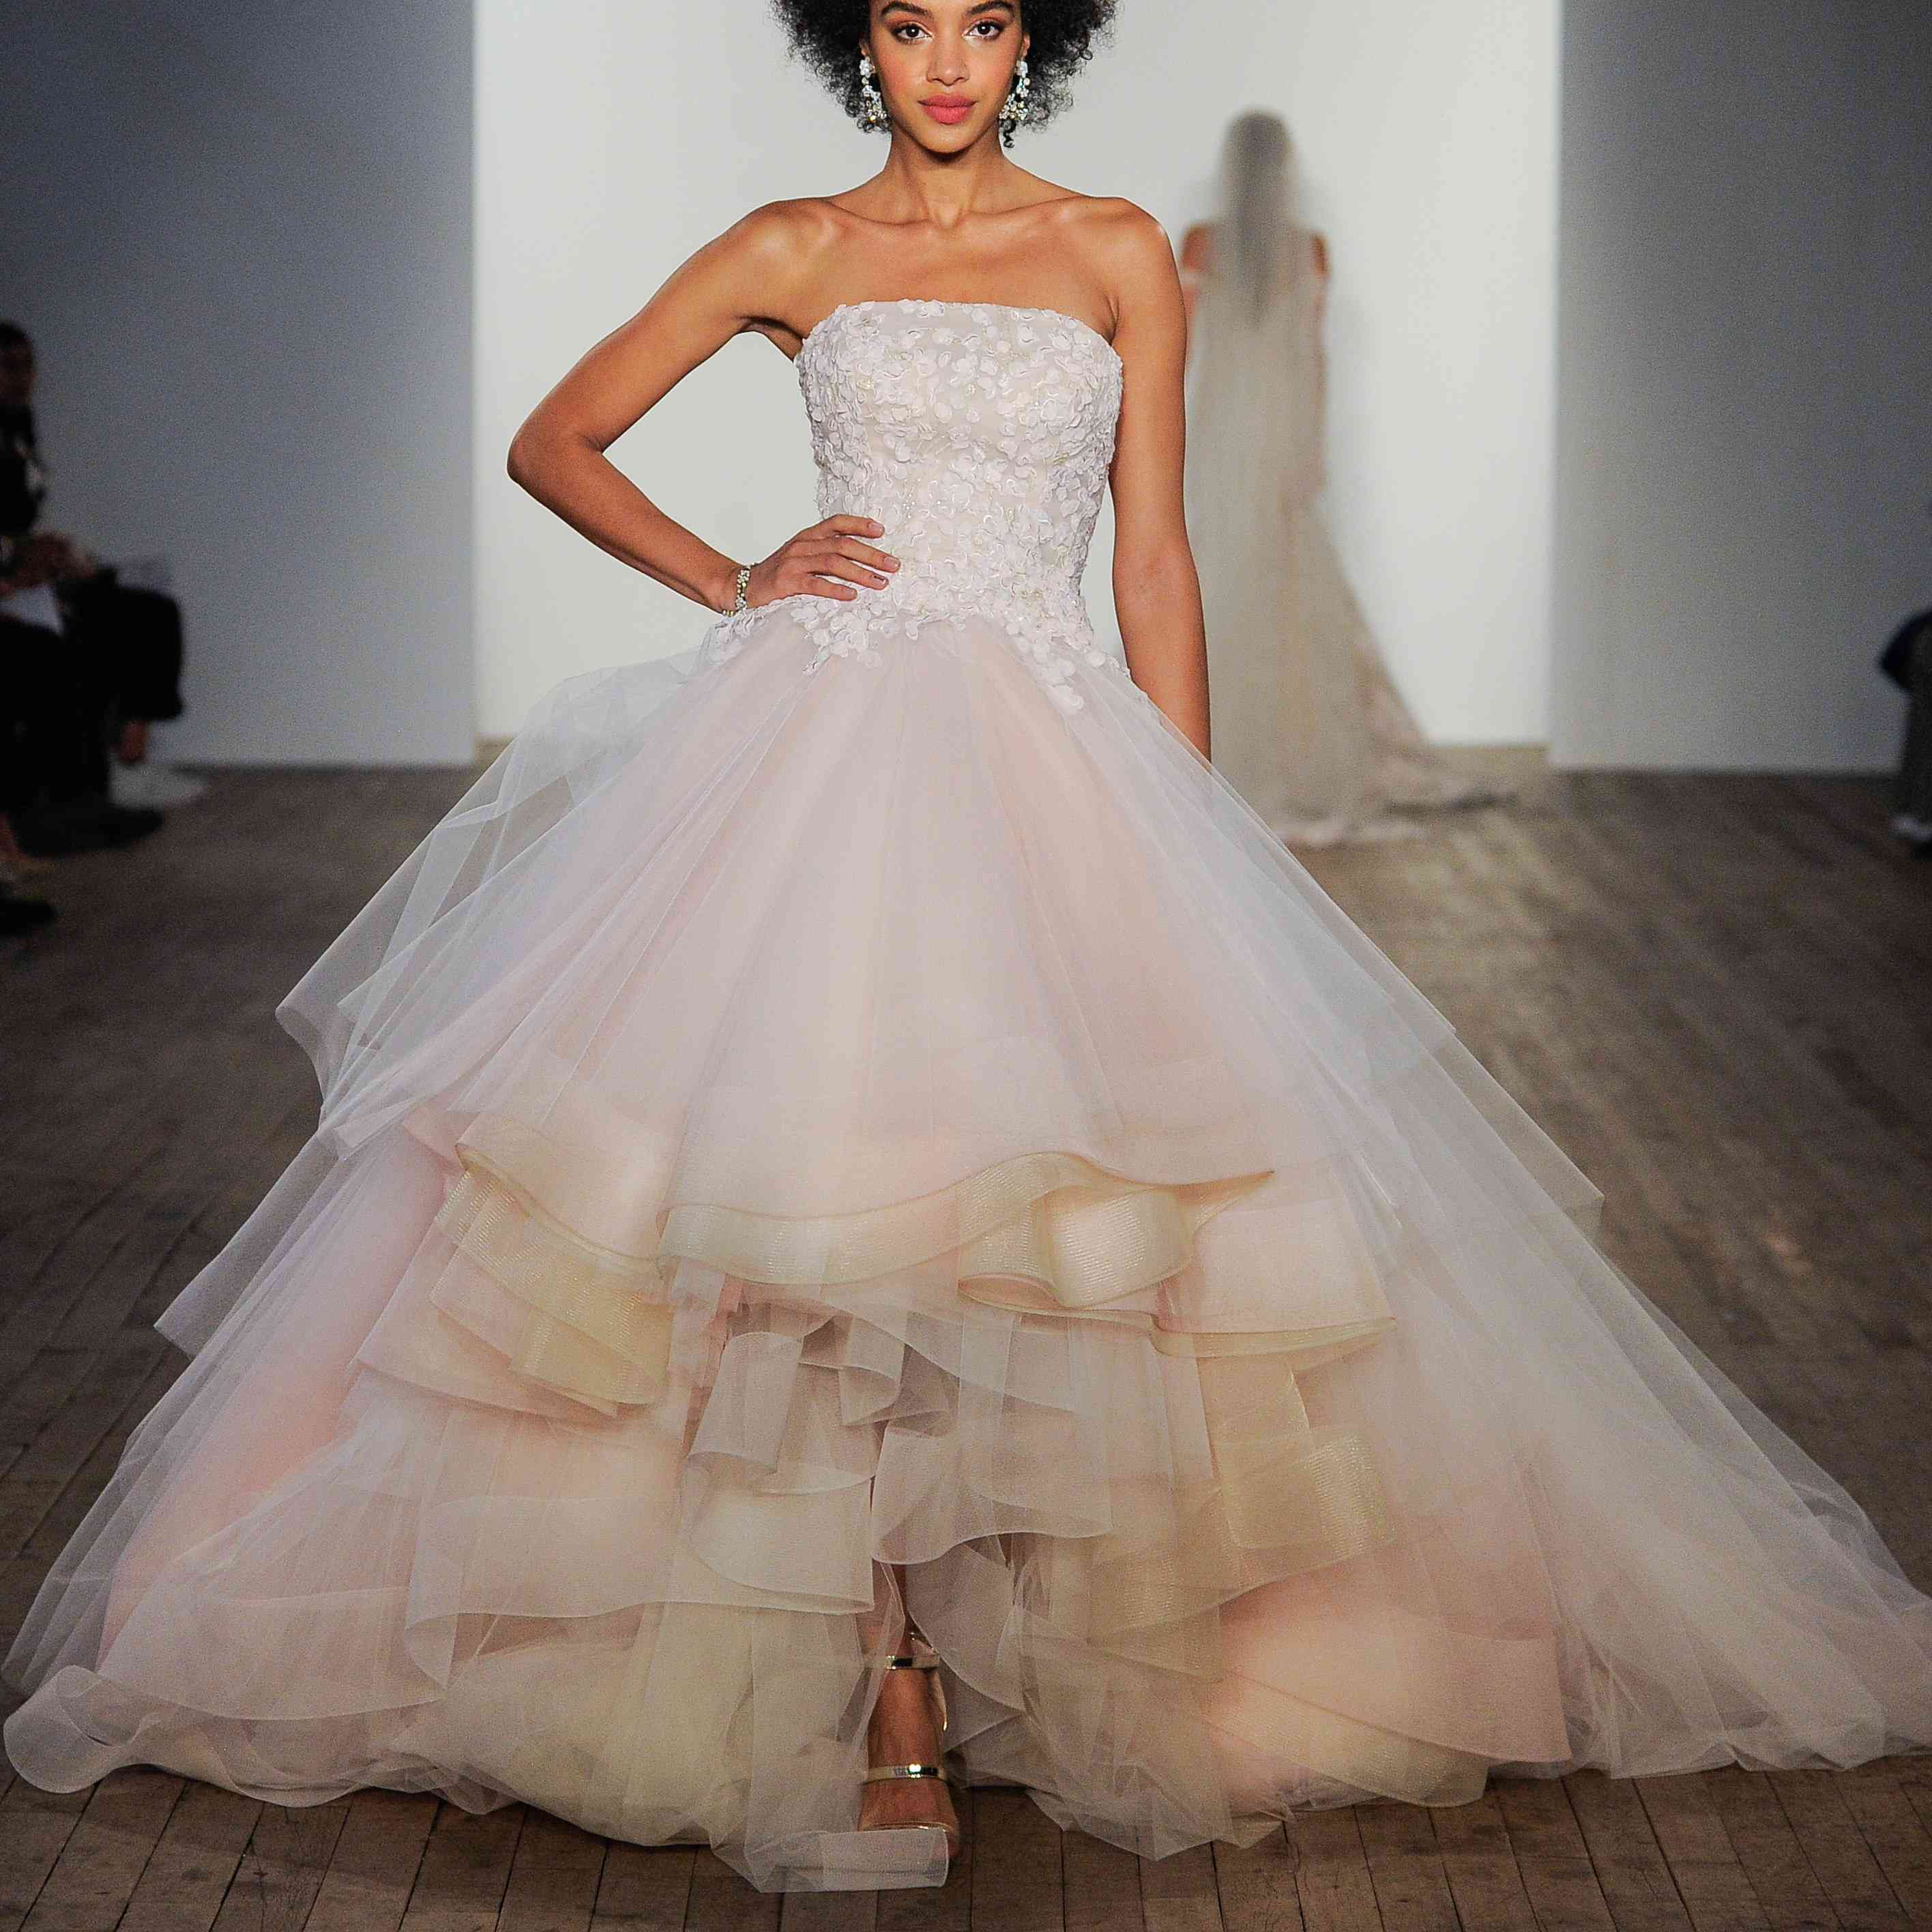 Grace strapless high-low wedding gown